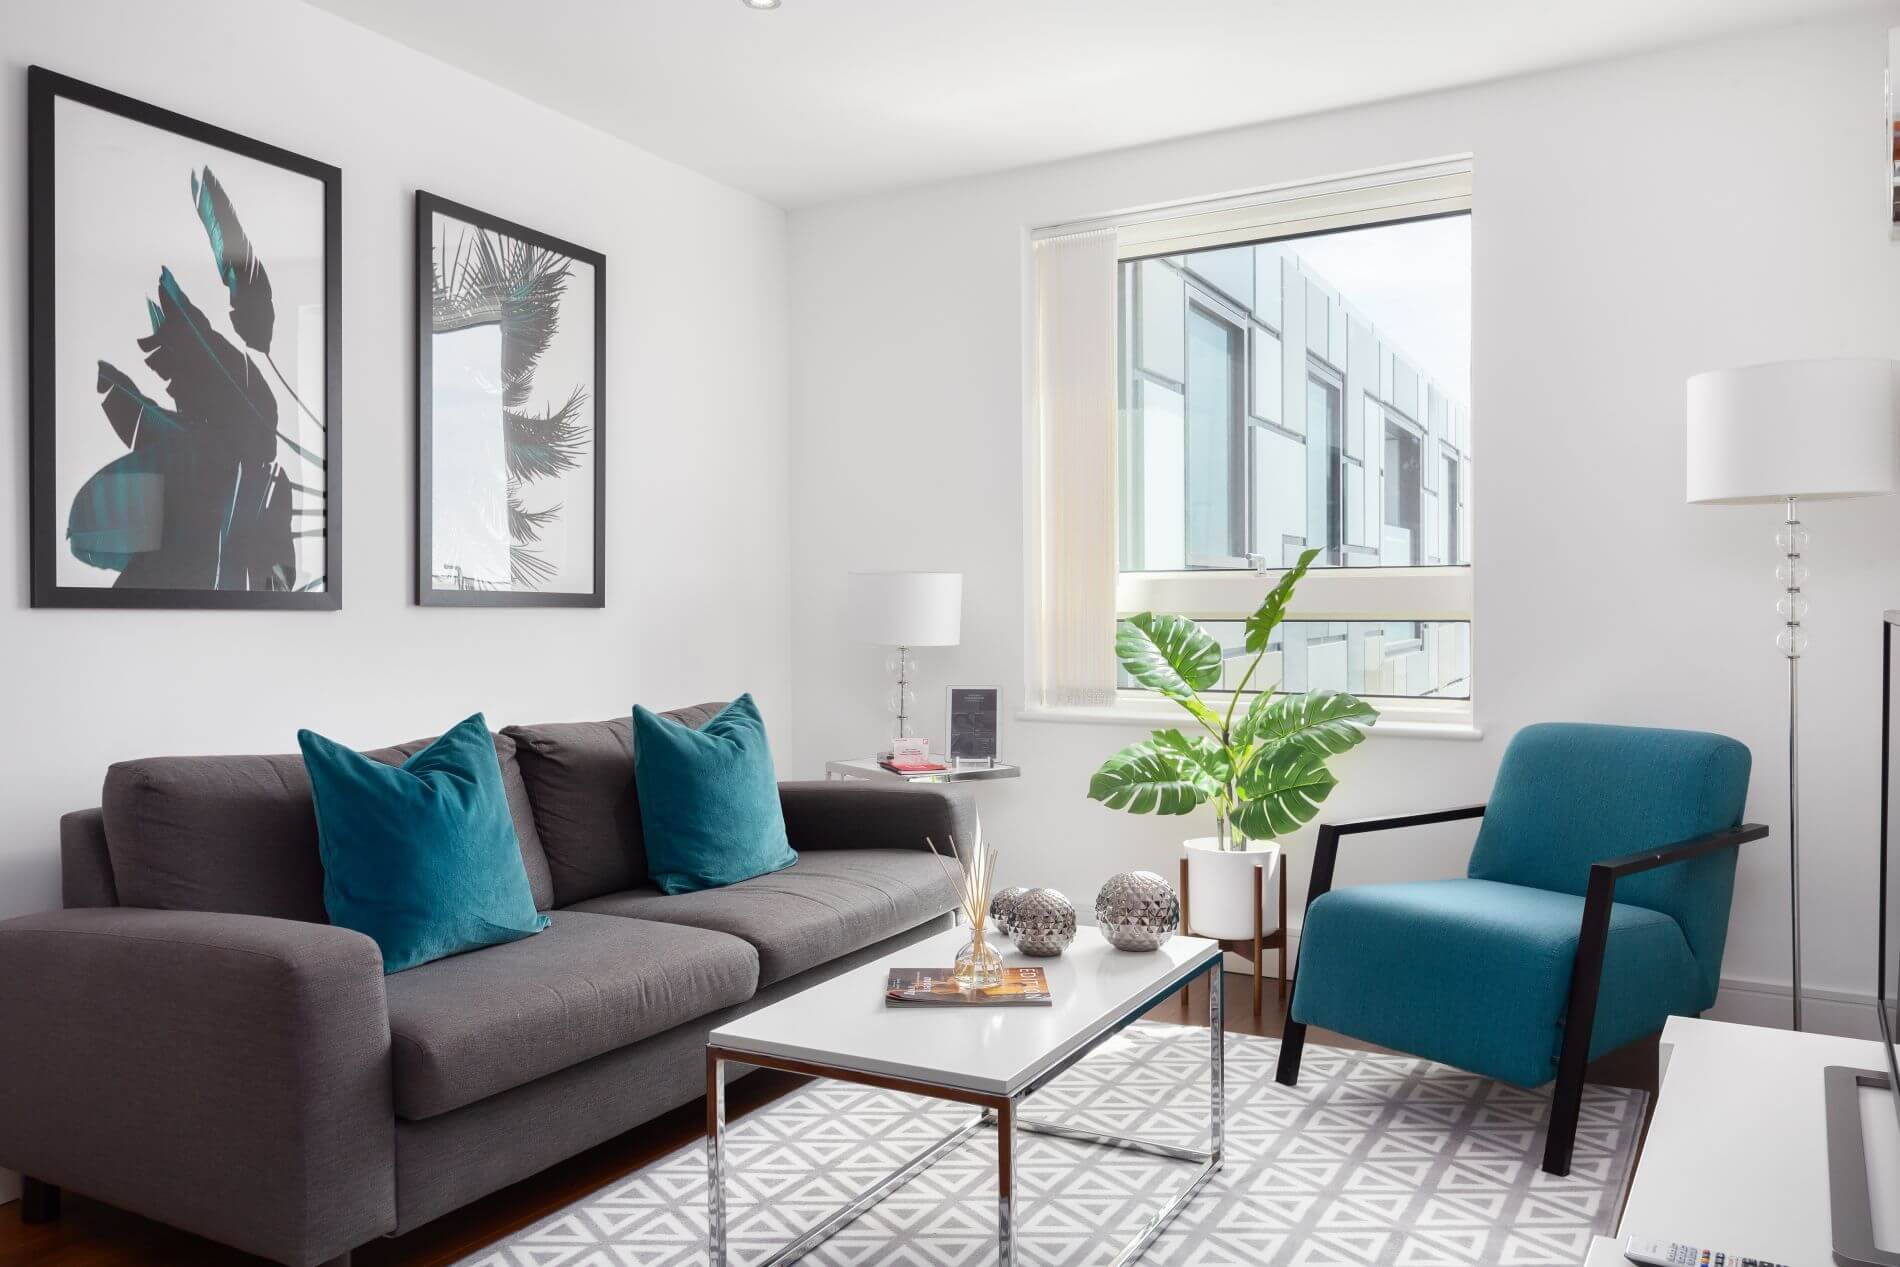 Fully quipped property rental in Canary Wharf with instant booking option